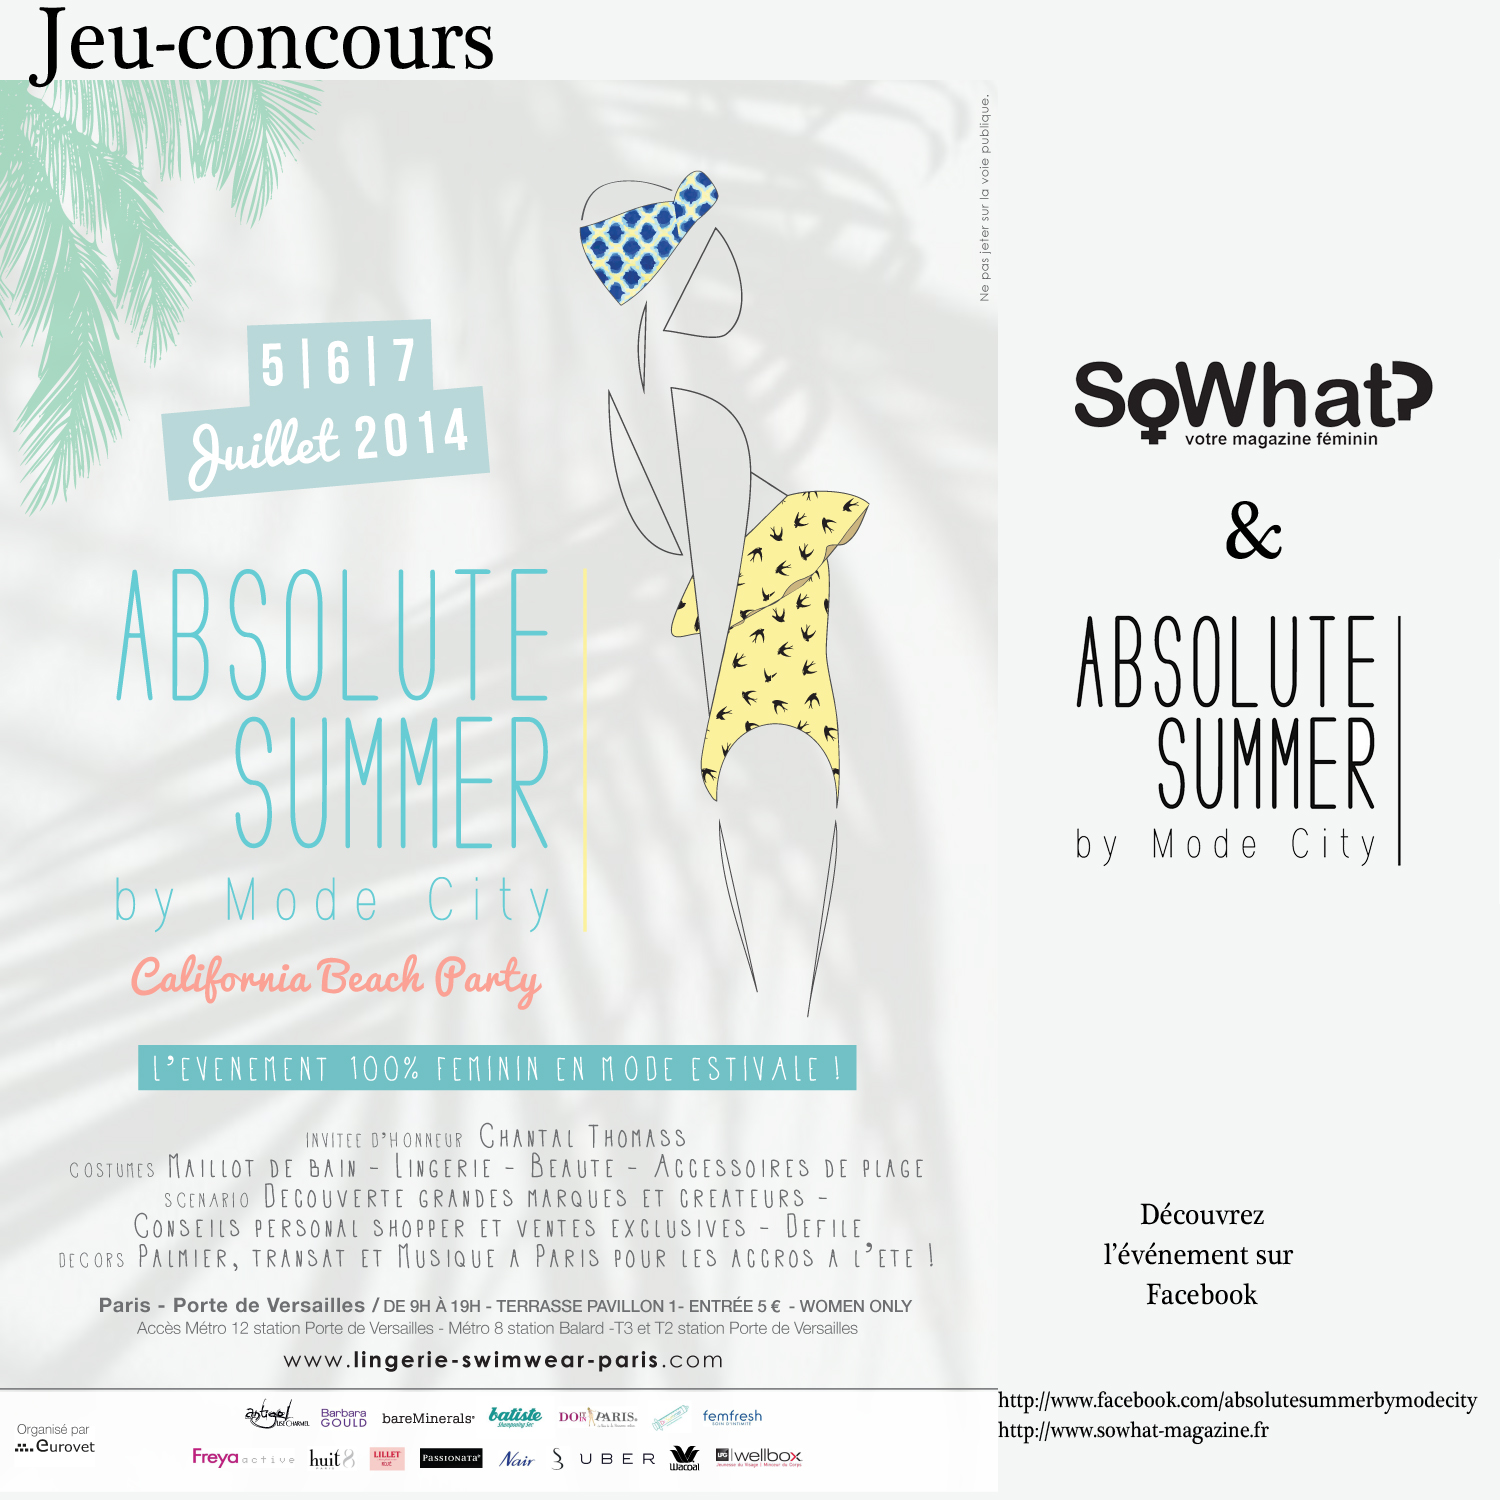 jeuconcoursabsolutesummersowhat